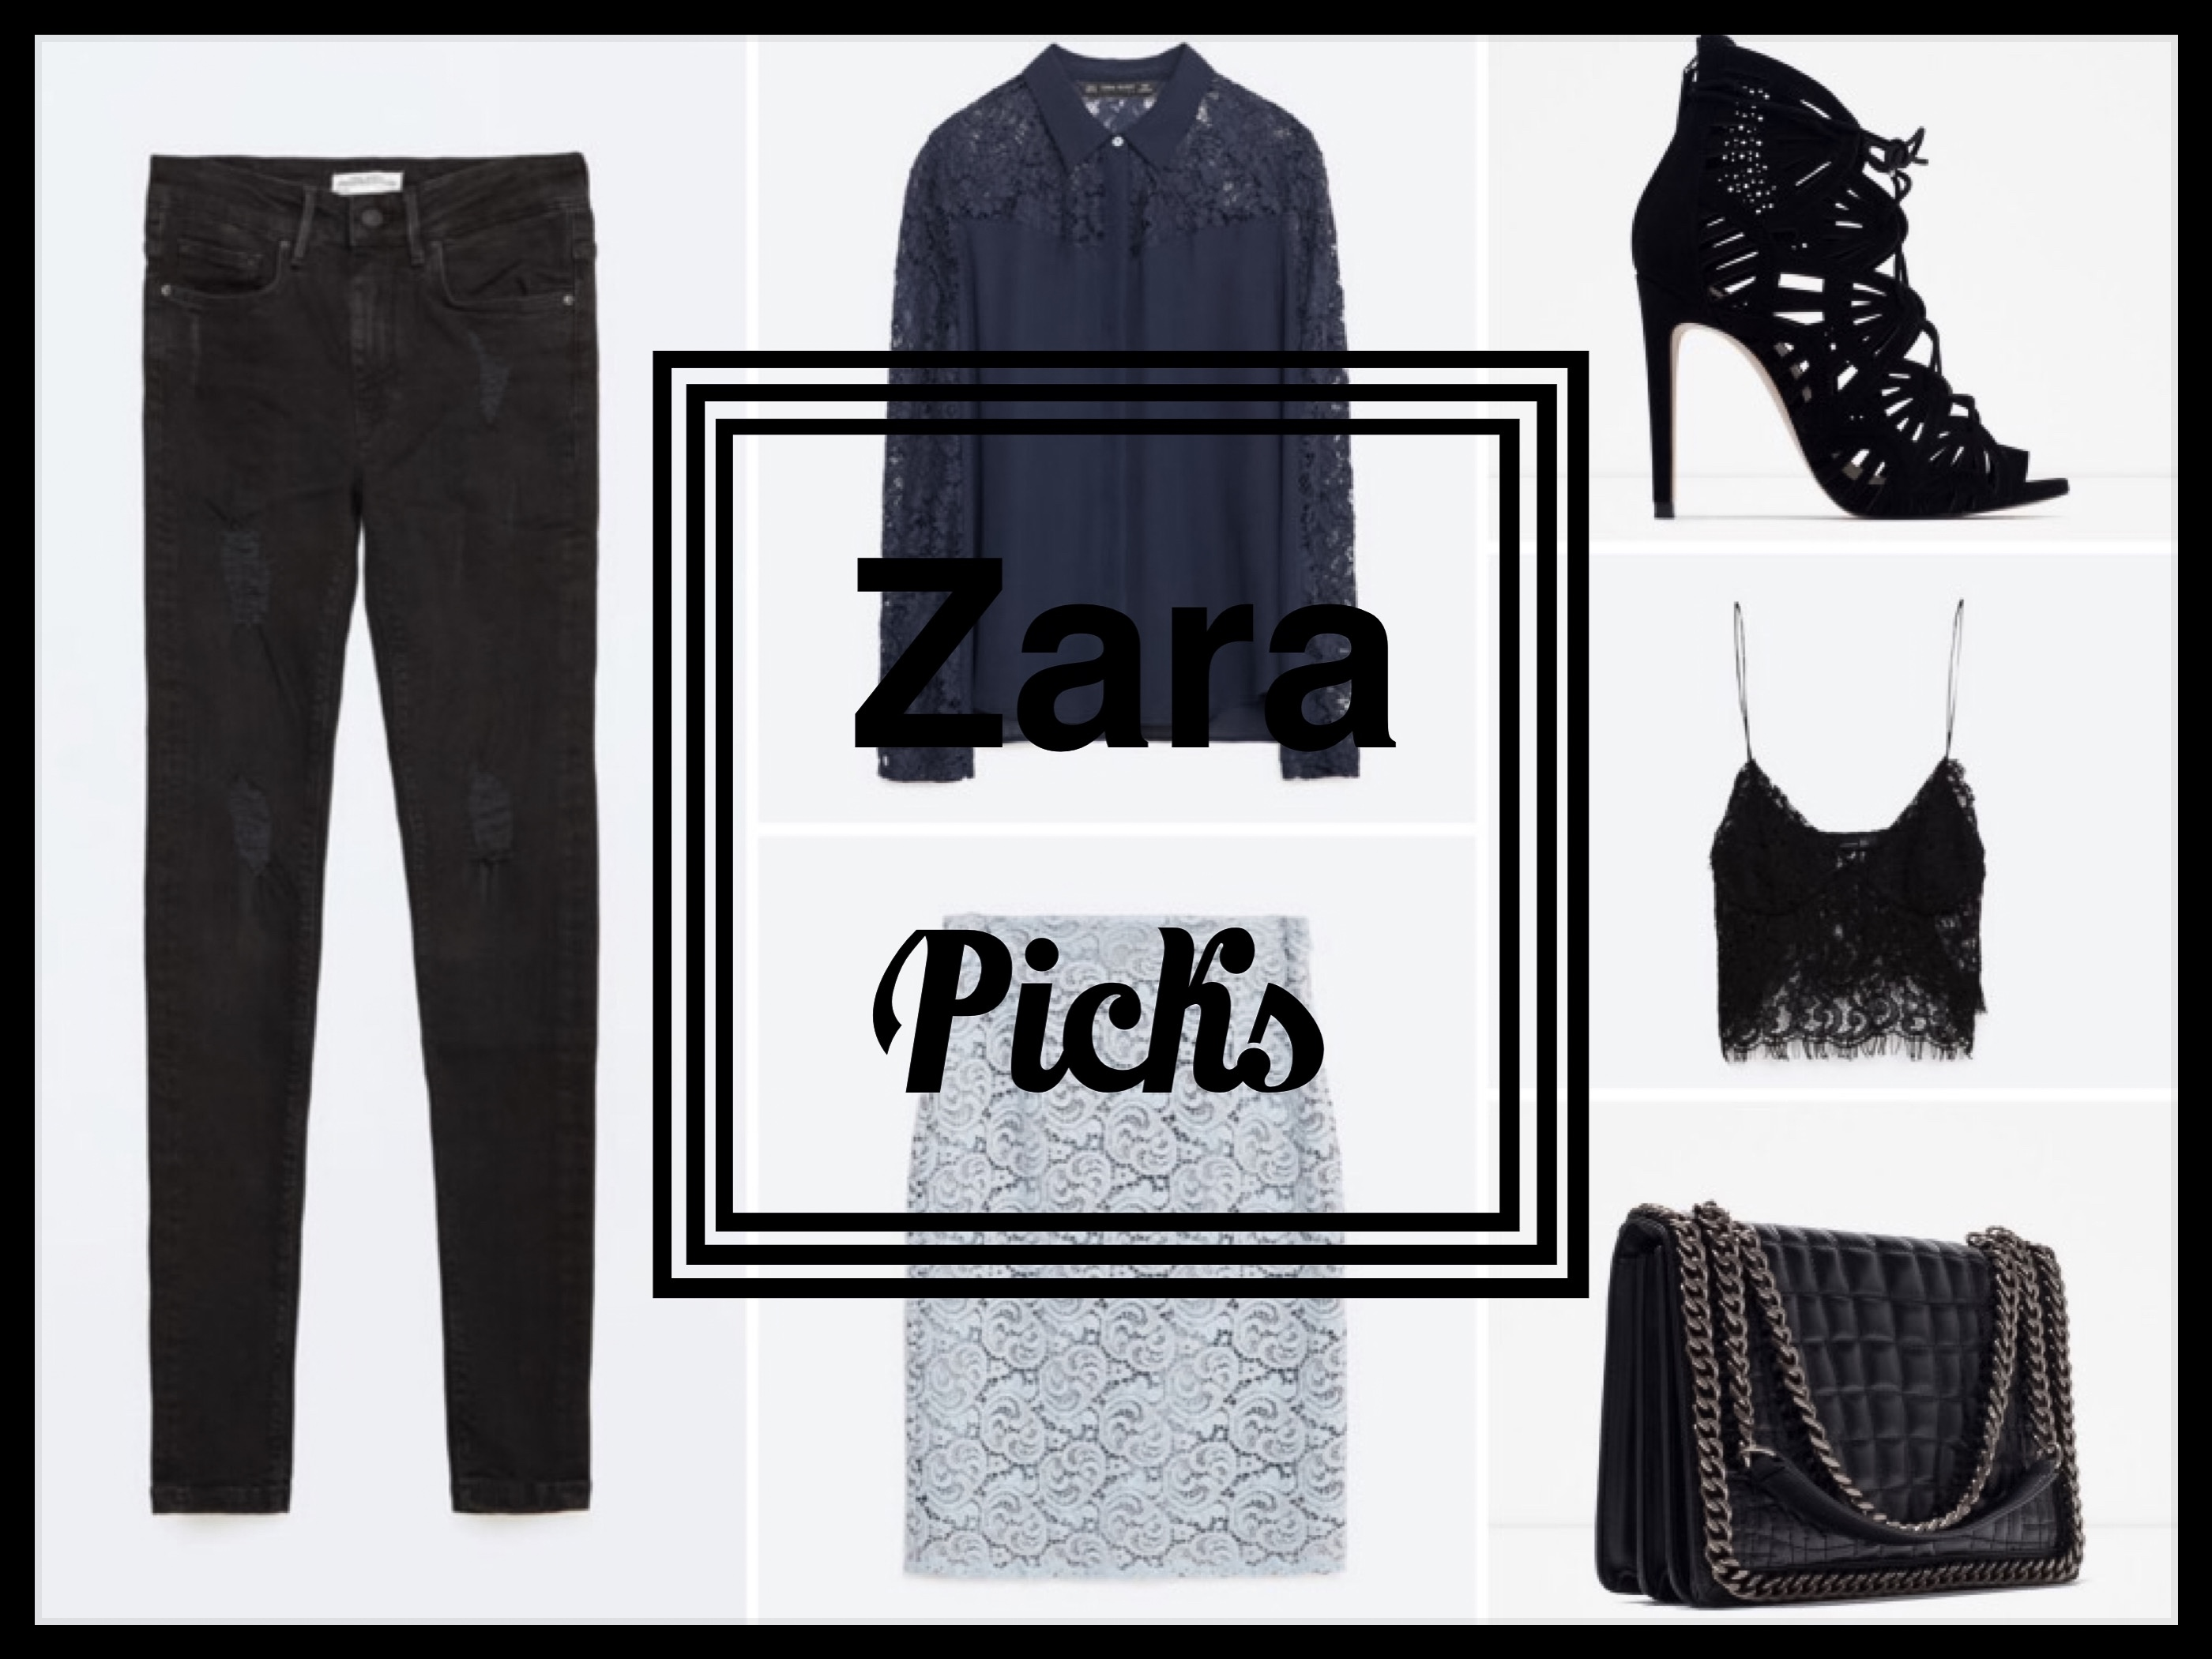 February Zara picks...